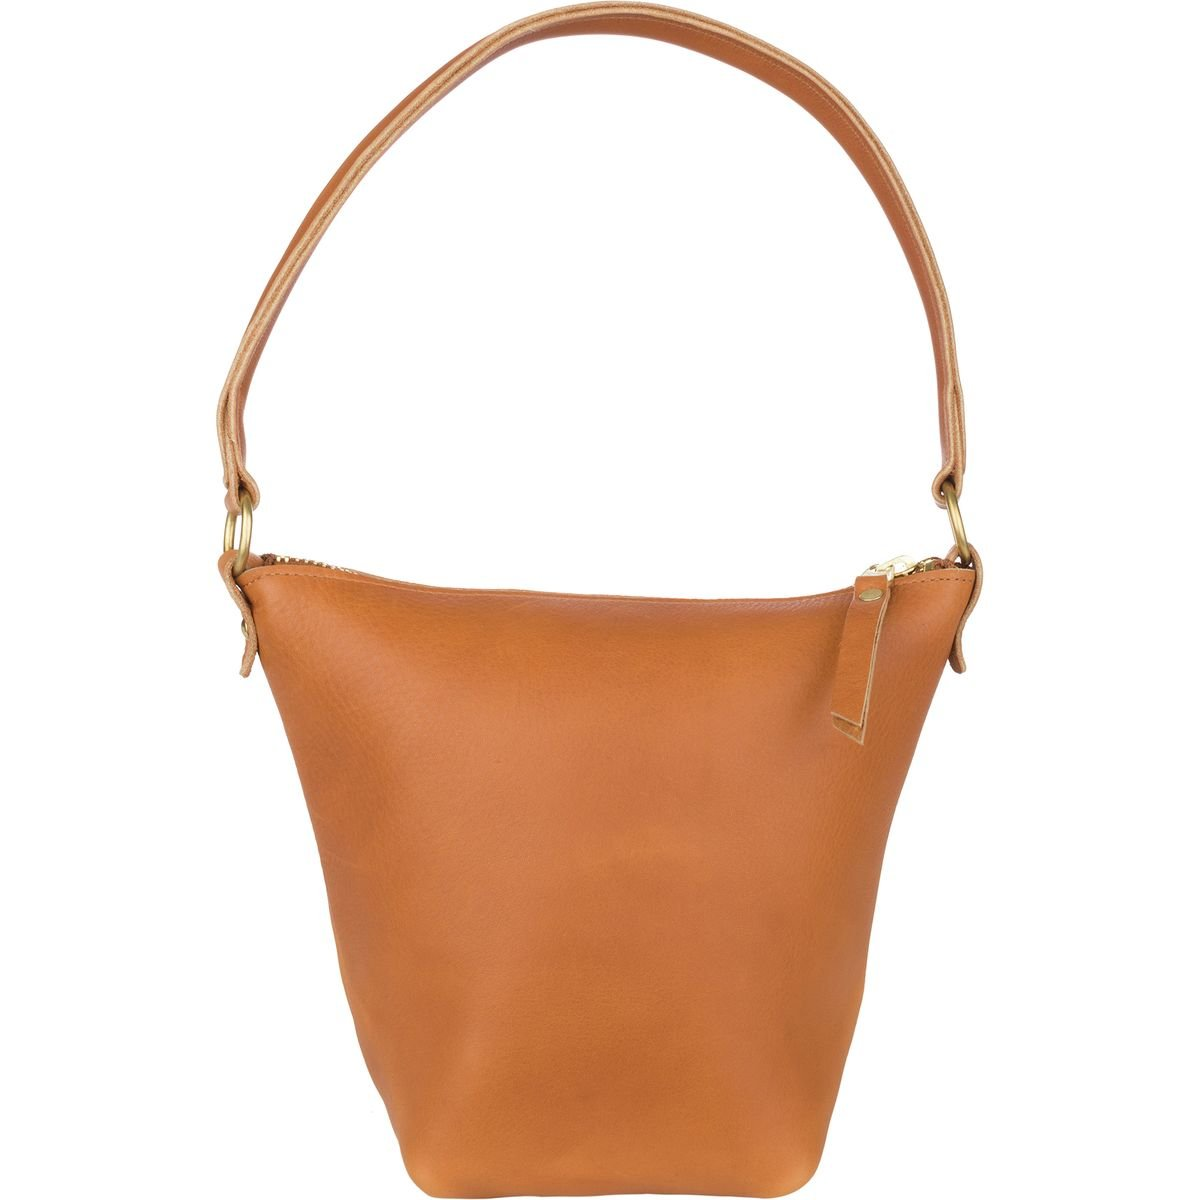 Wood and Faulk Field Bag Purse - Women's Fawn Leather, One Size by Wood and Faulk